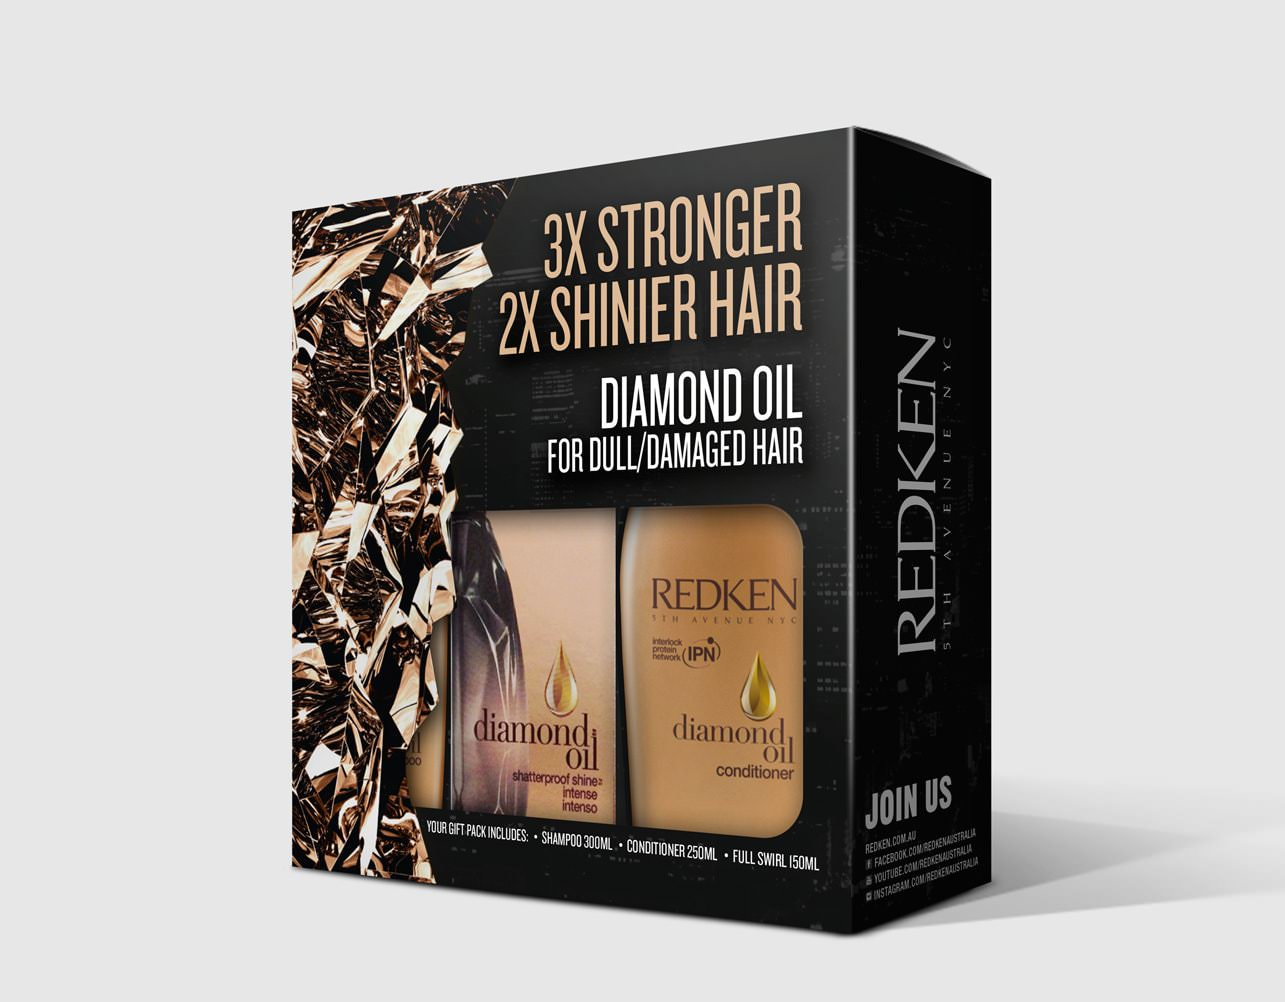 DJWFolio-Packaging_2014_Redken_9